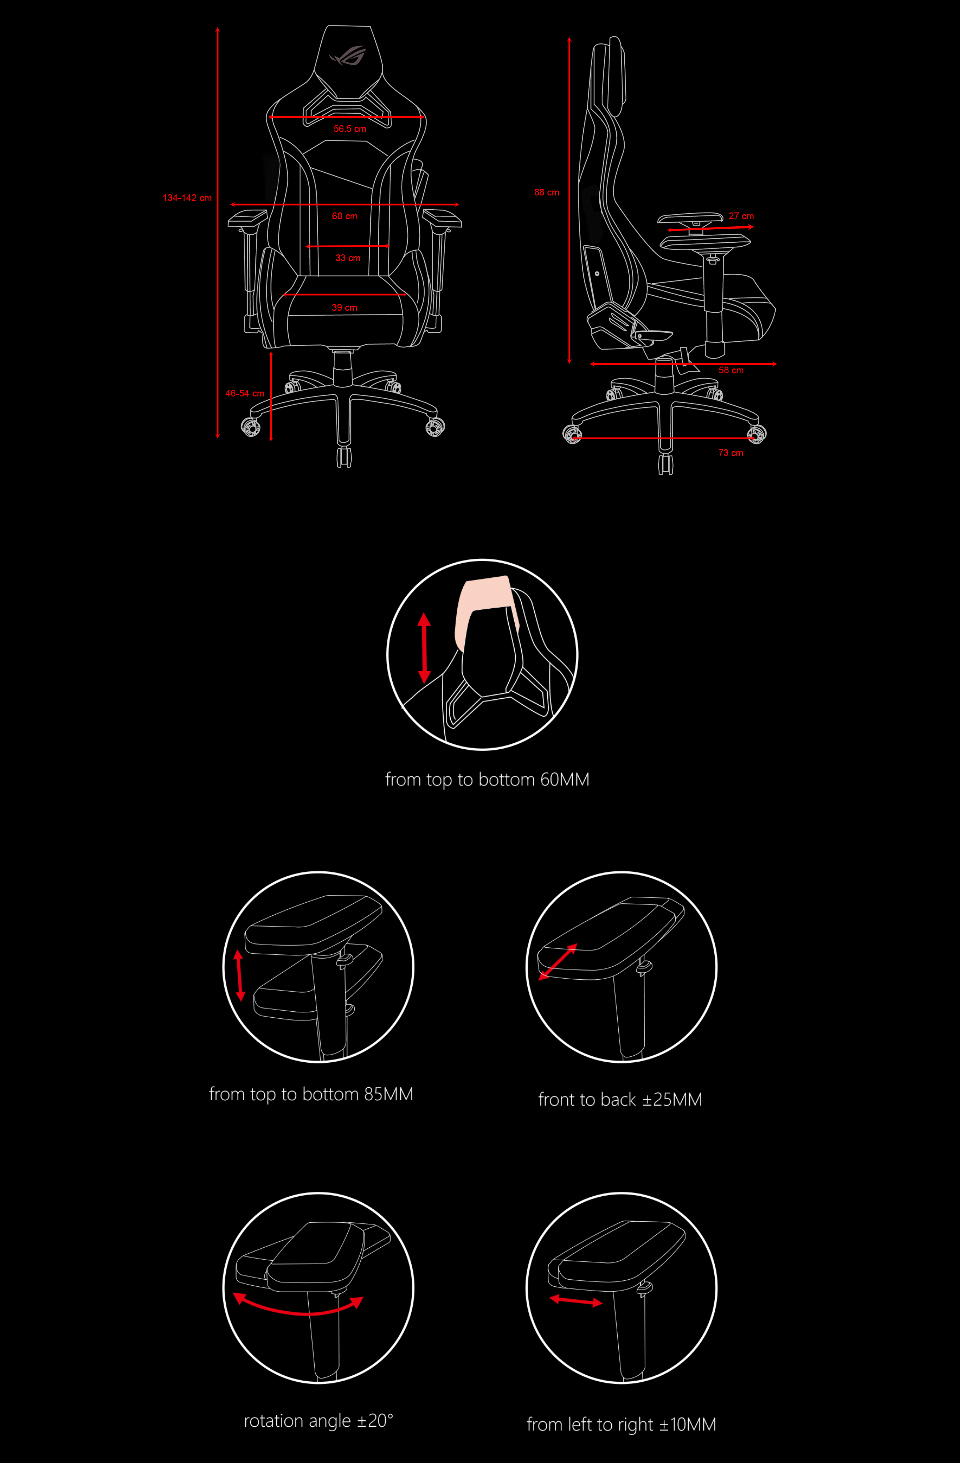 ASUS ROG Chariot Core Gaming Chair features 3